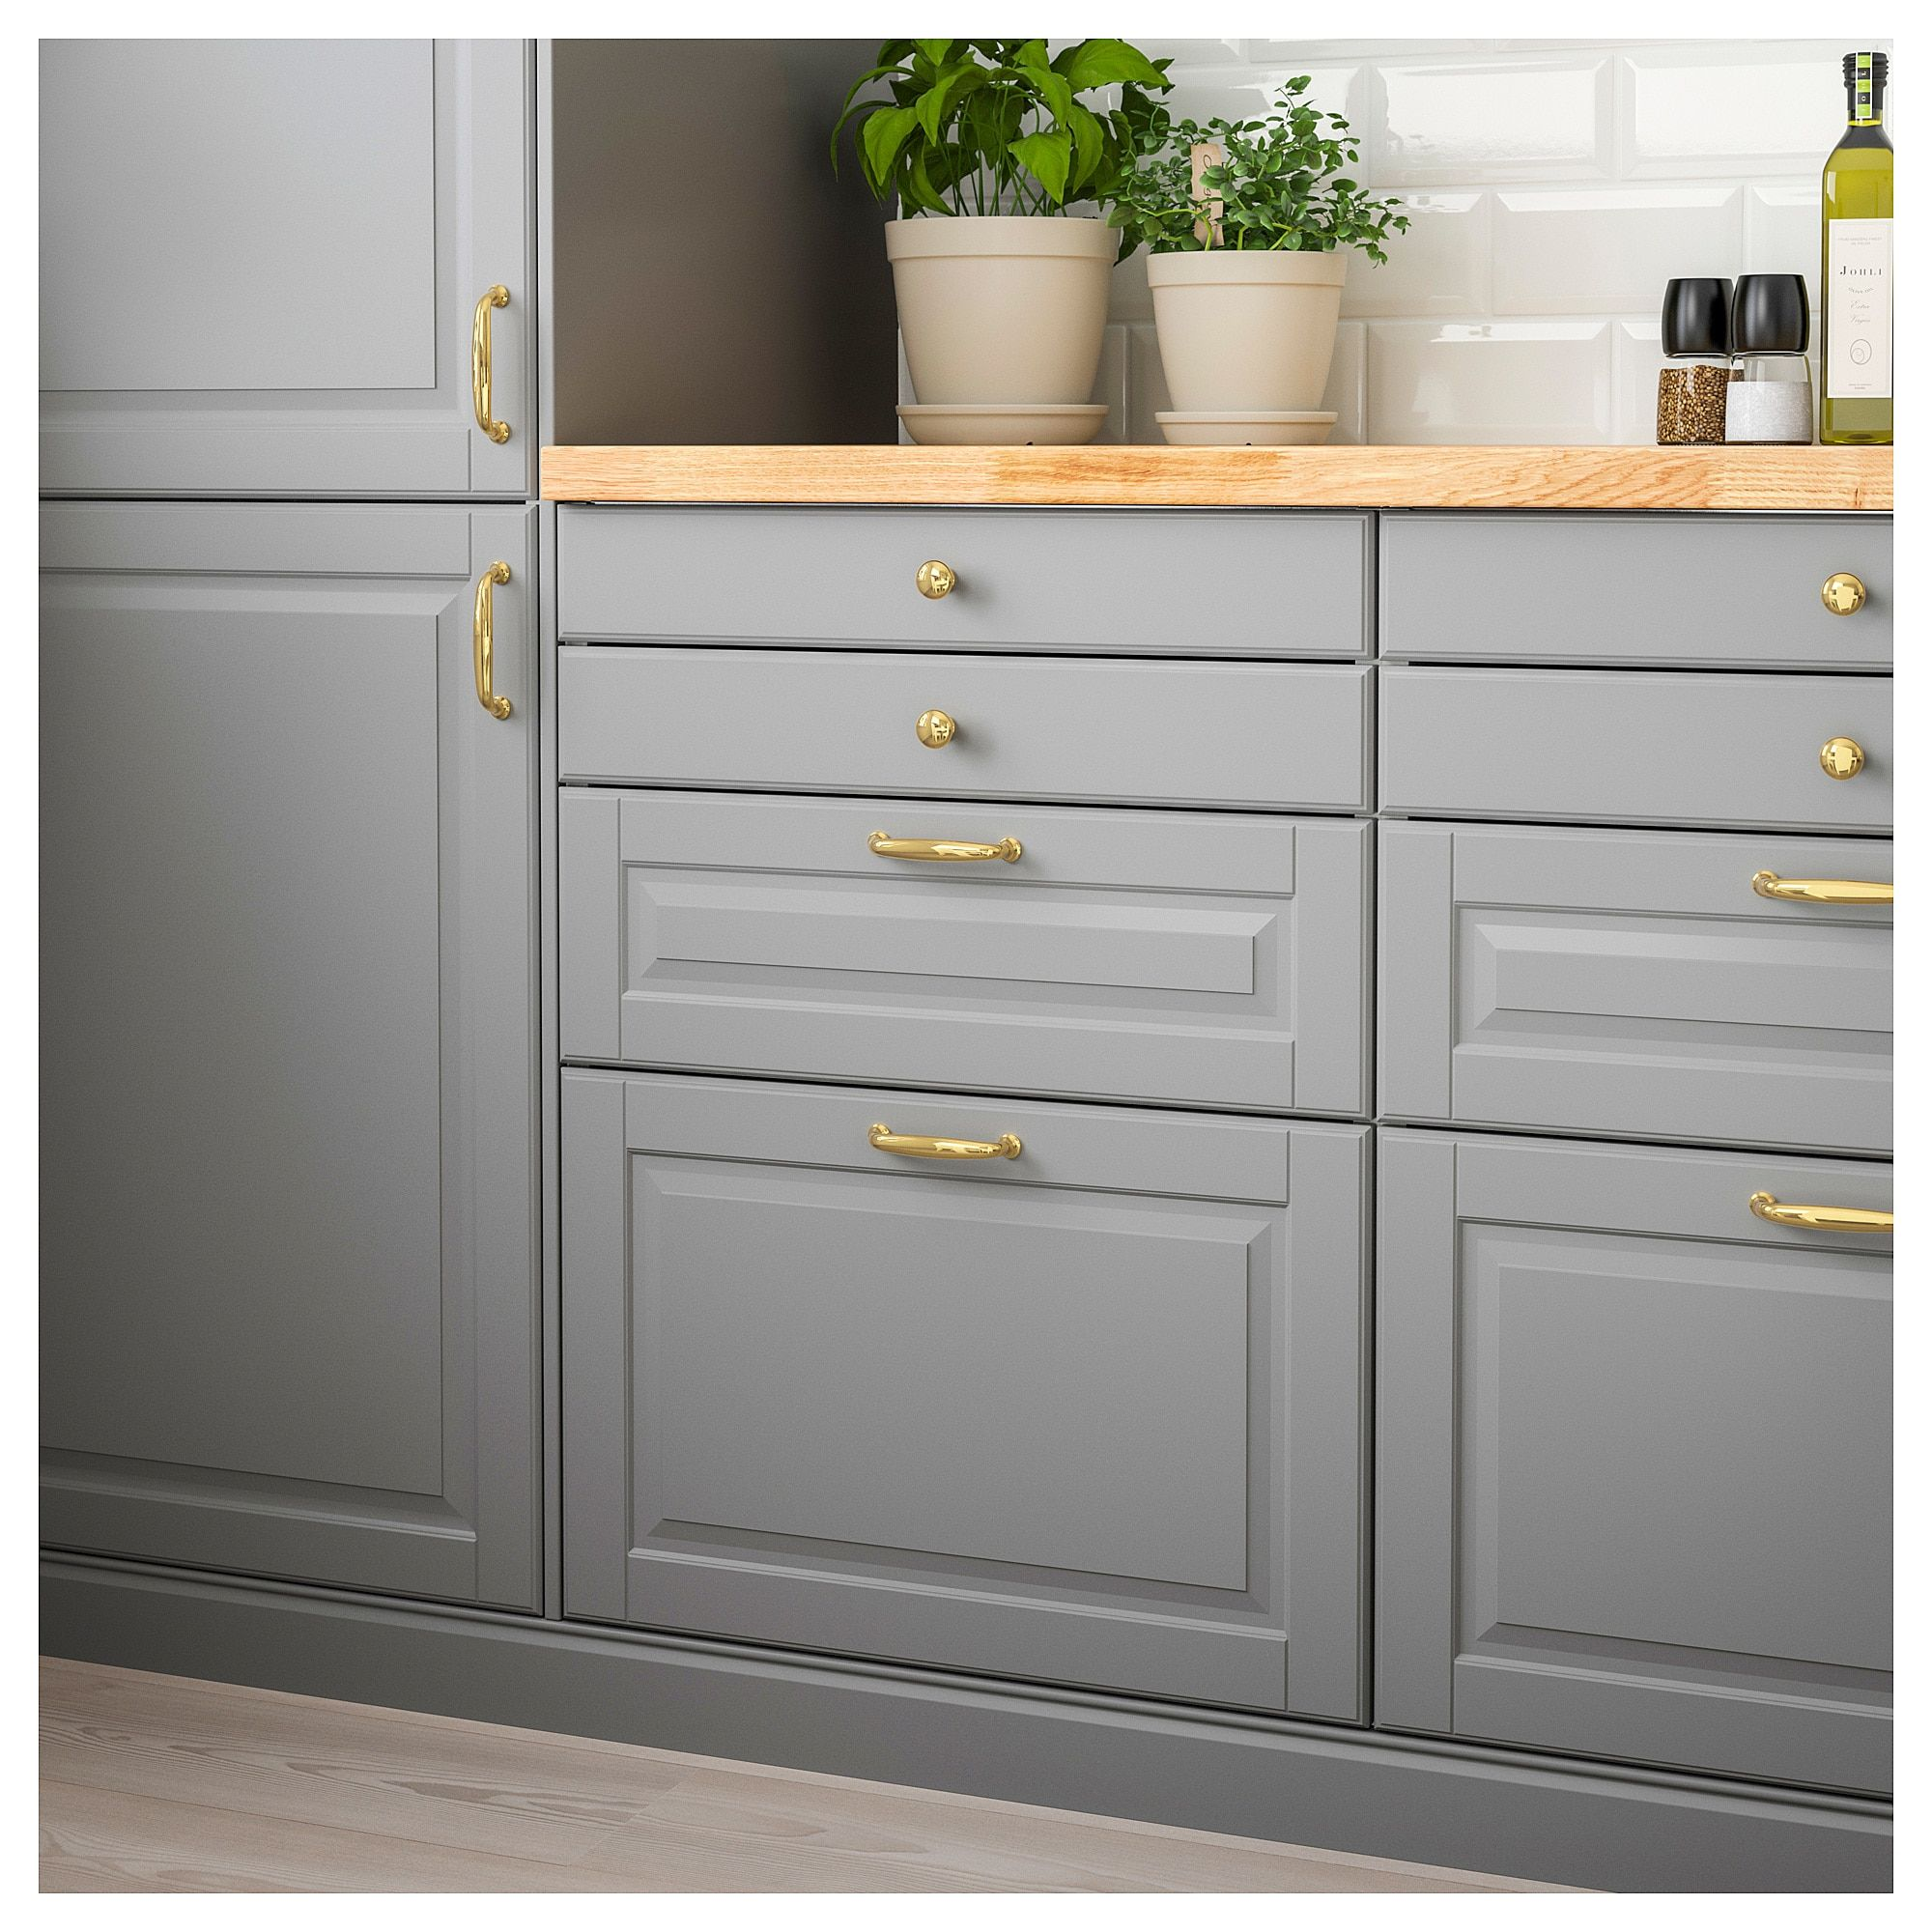 IKEA - BODBYN Drawer front gray